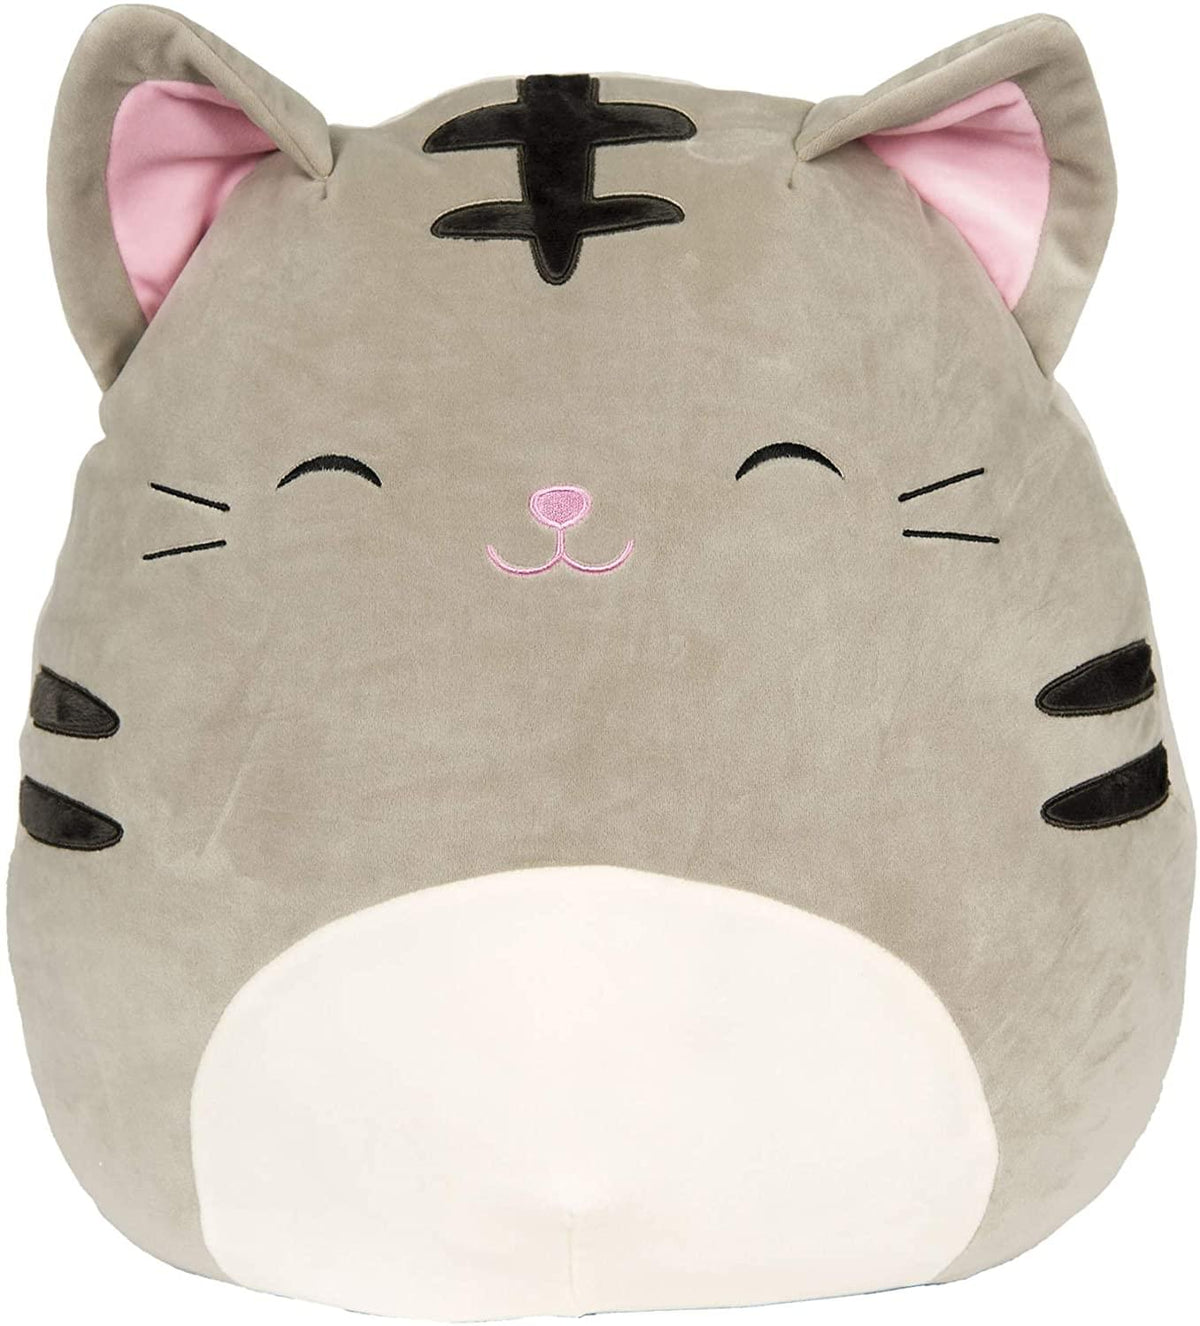 Squishmallow 20 Inch Plush | Tally the Grey Tabby Cat